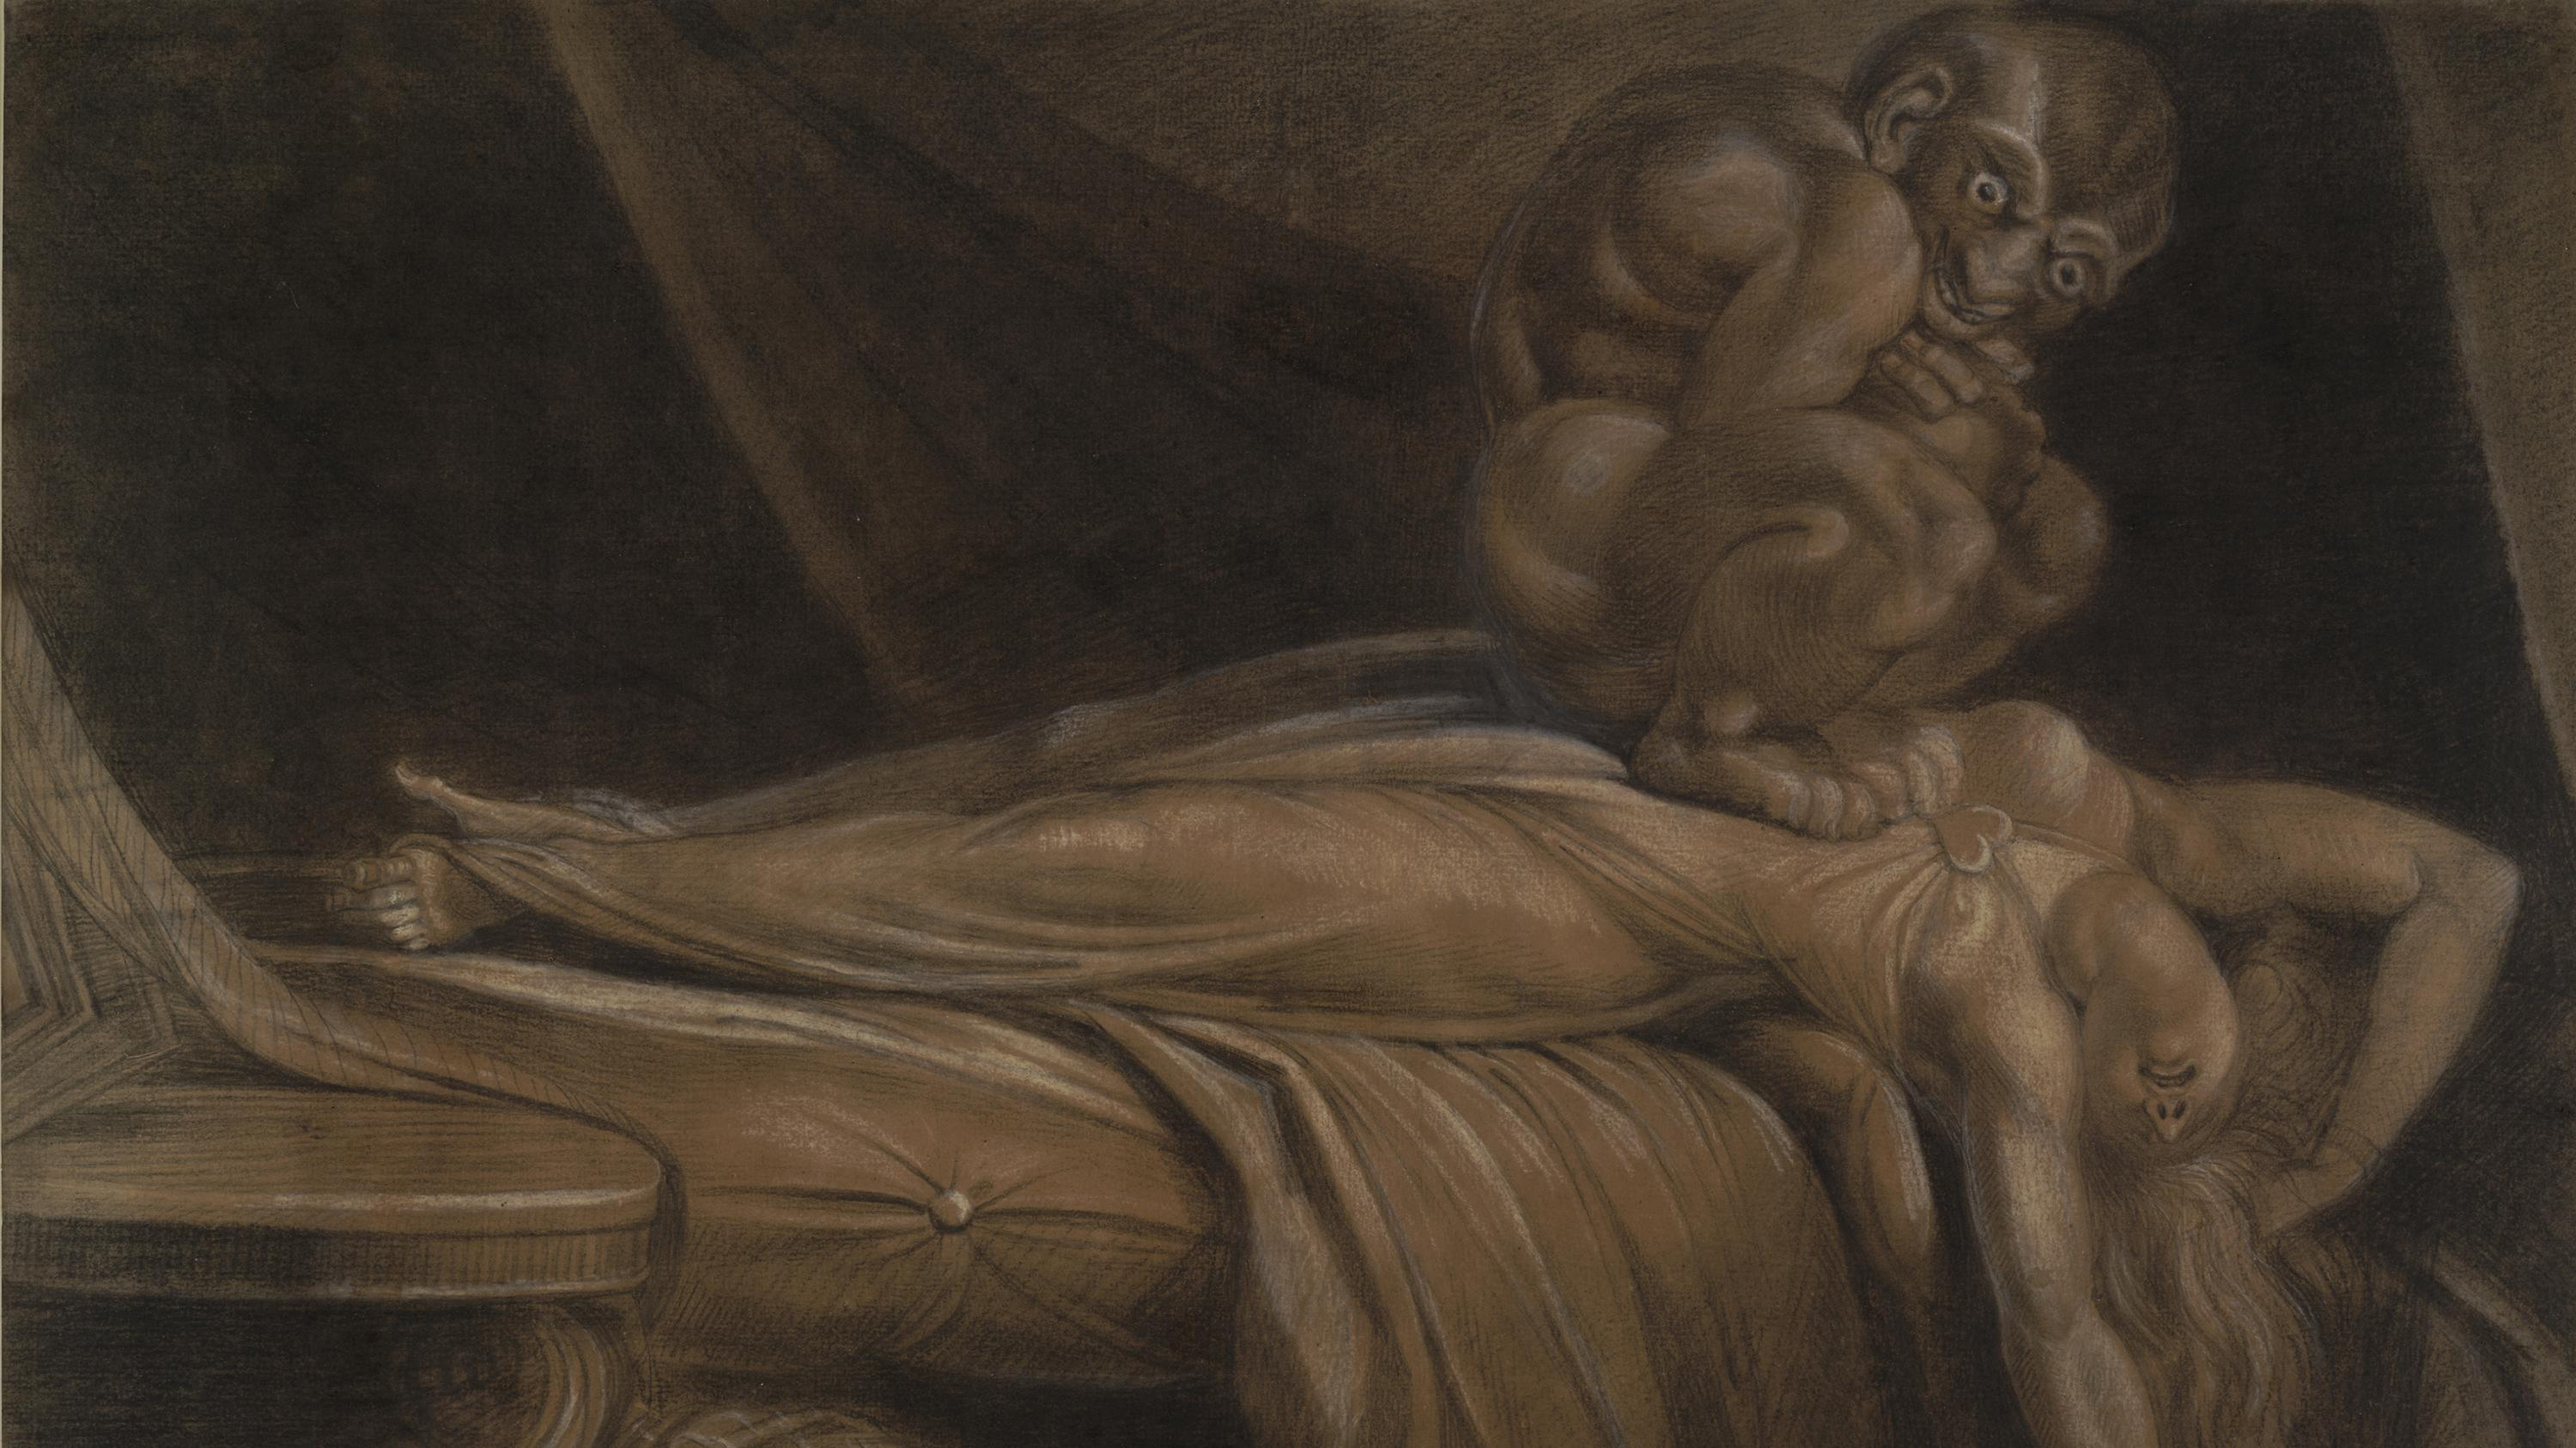 an analysis of the works the nightmare by henry fuseli and the day after by edvard munch The nightmare--henry fuseli formal and contextual analysis .